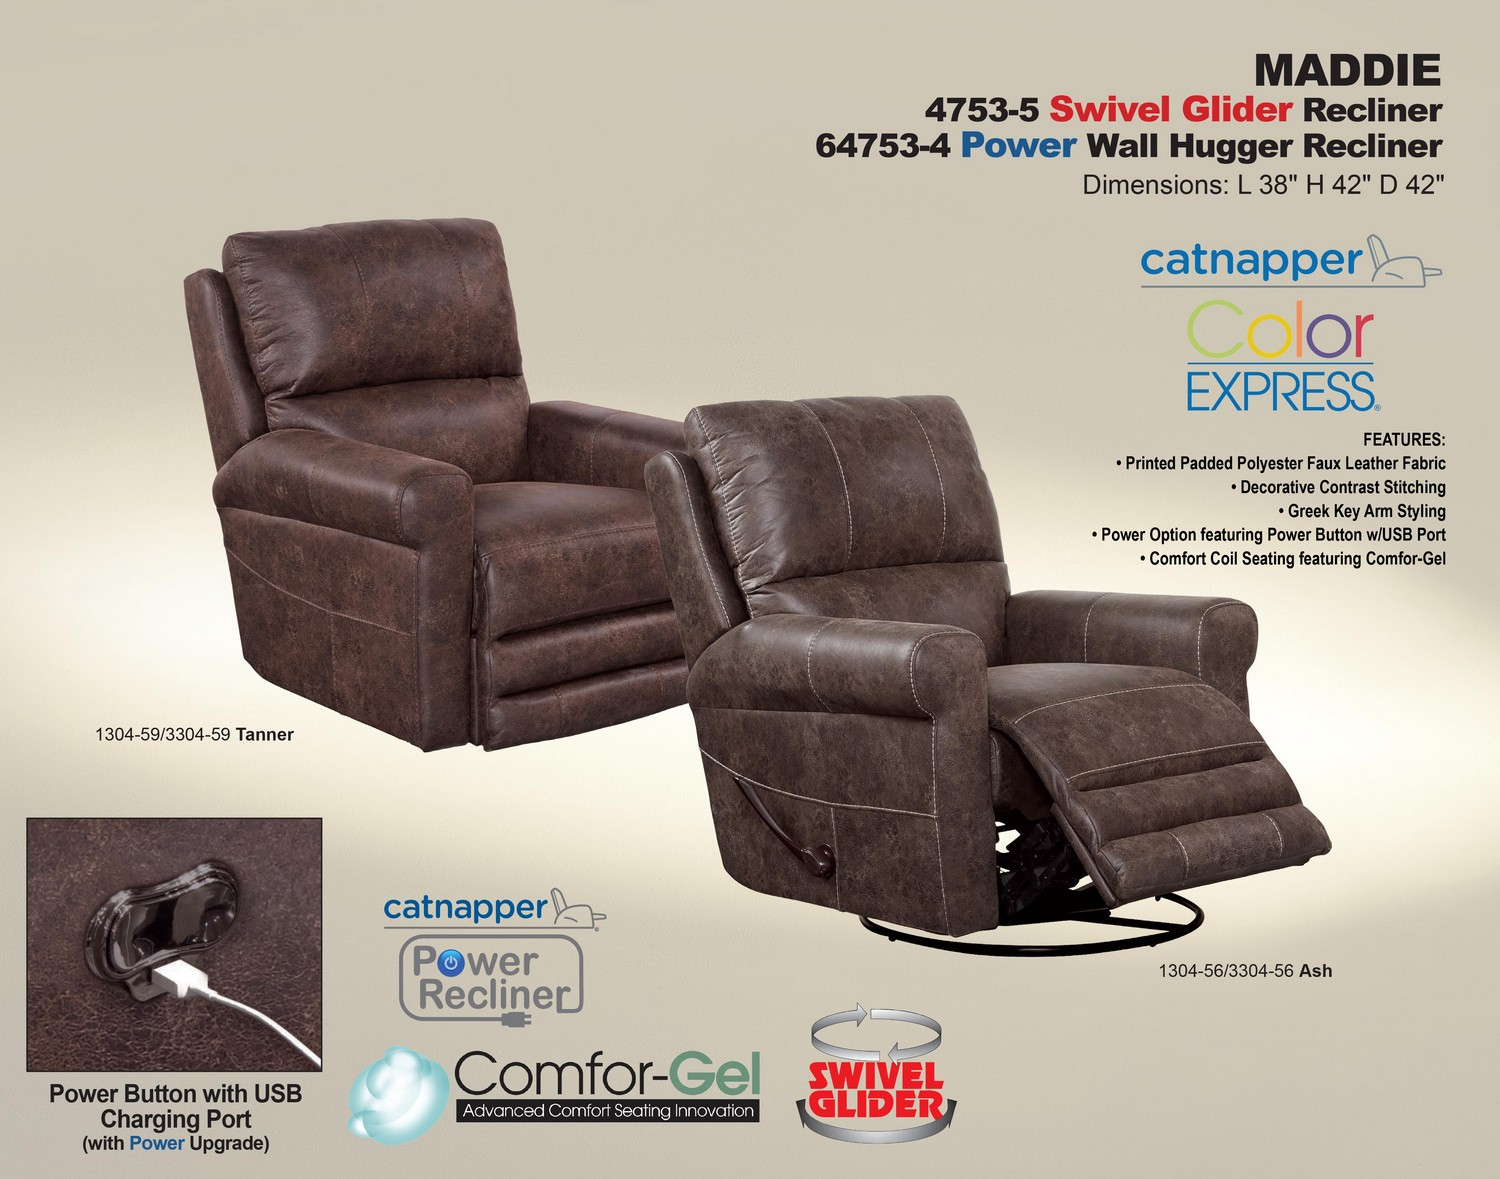 CatNapper Maddie Power Wall Hugger Recliner - Ash